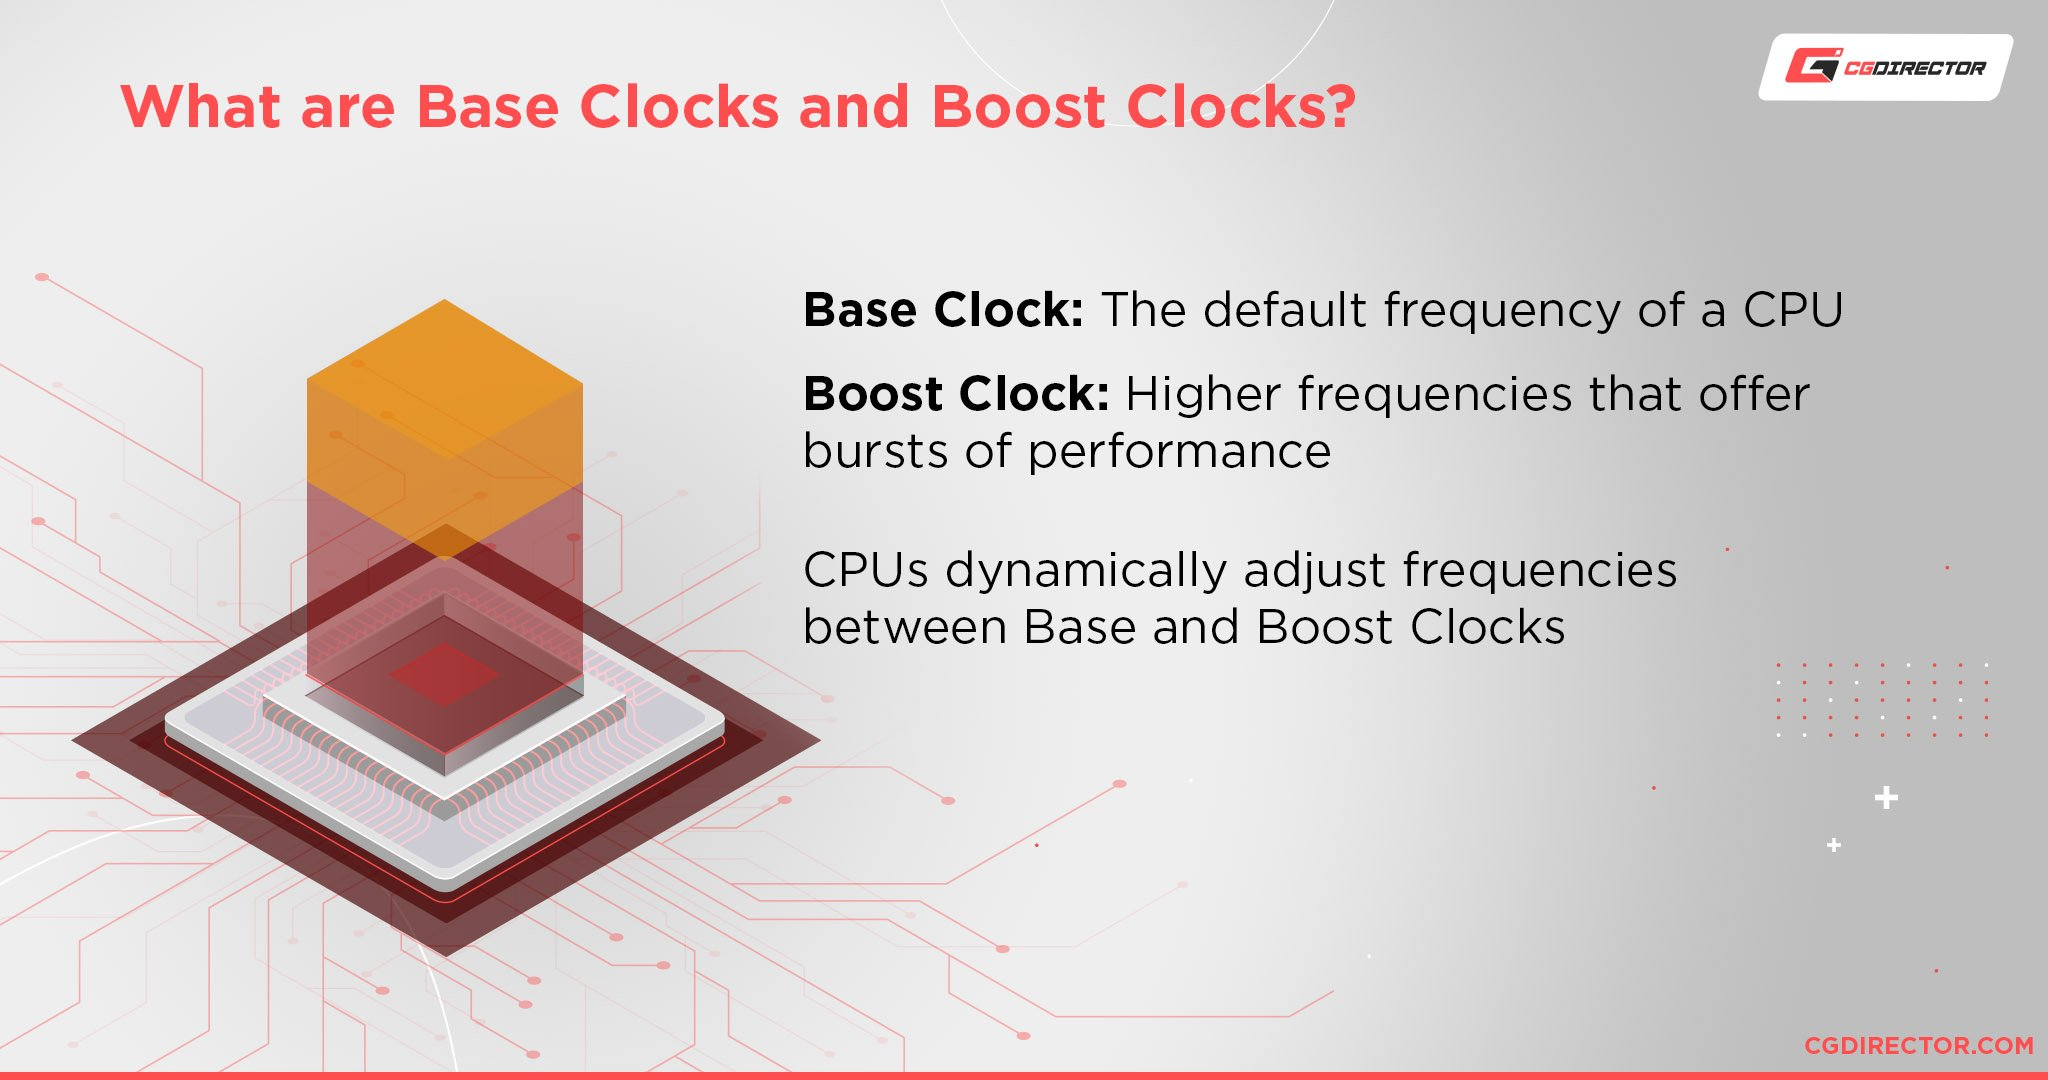 What are Base Clocks and Boost Clocks